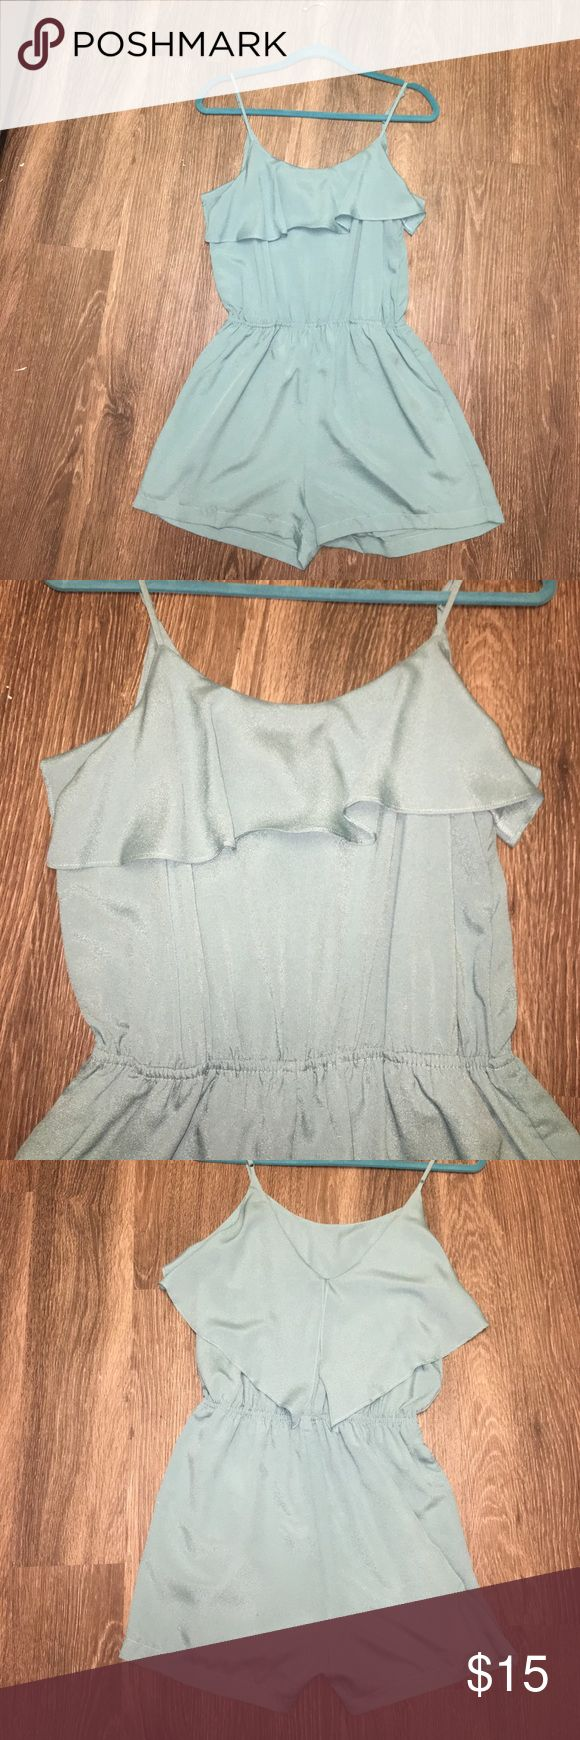 Light blue ruffle romper! this light blue ruffle romper is perfect for spring or summer! Only worn once!! Size medium Naked Zebra Pants Jumpsuits & Rompers